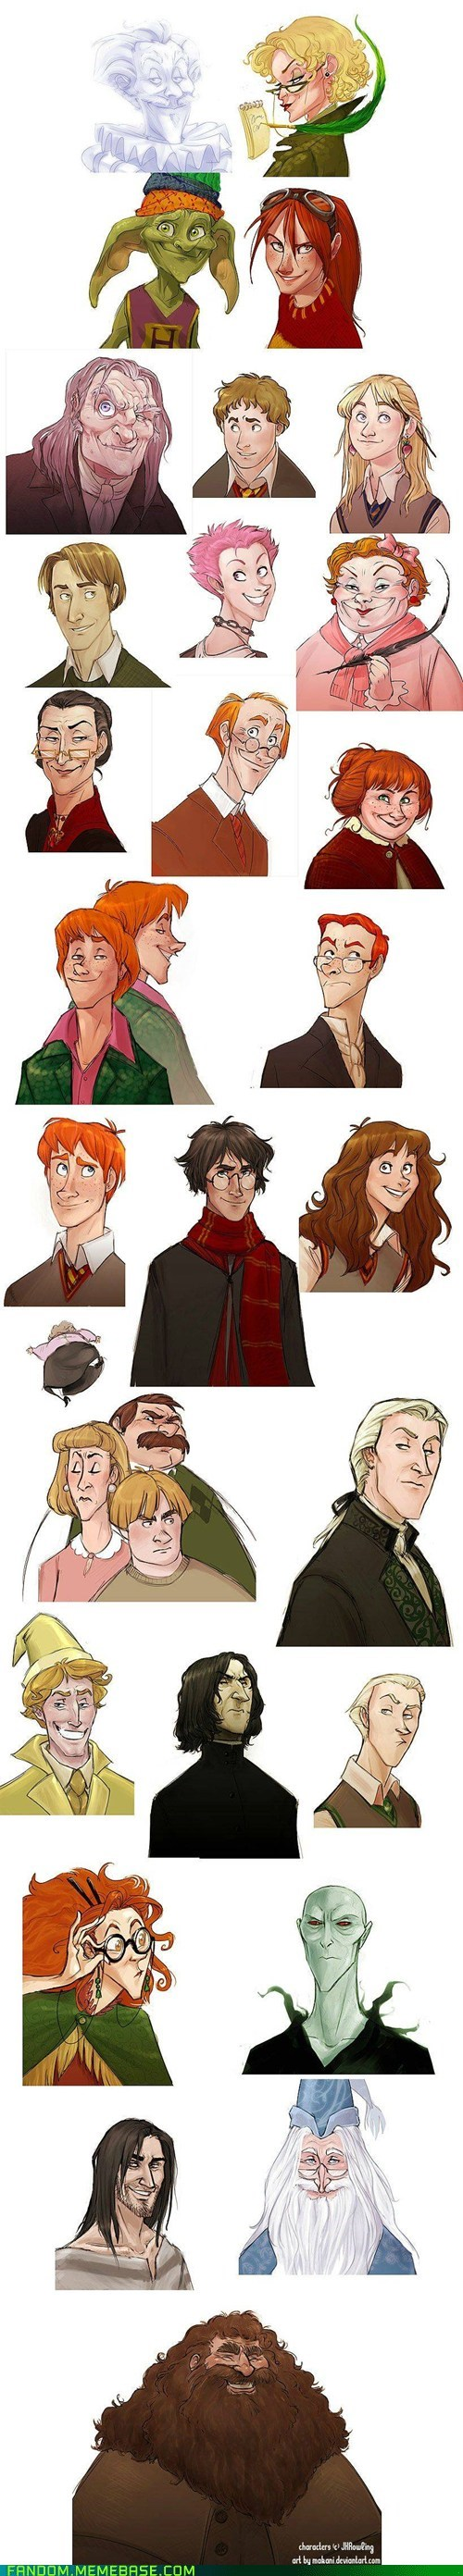 Harry Potter and the Animated Series